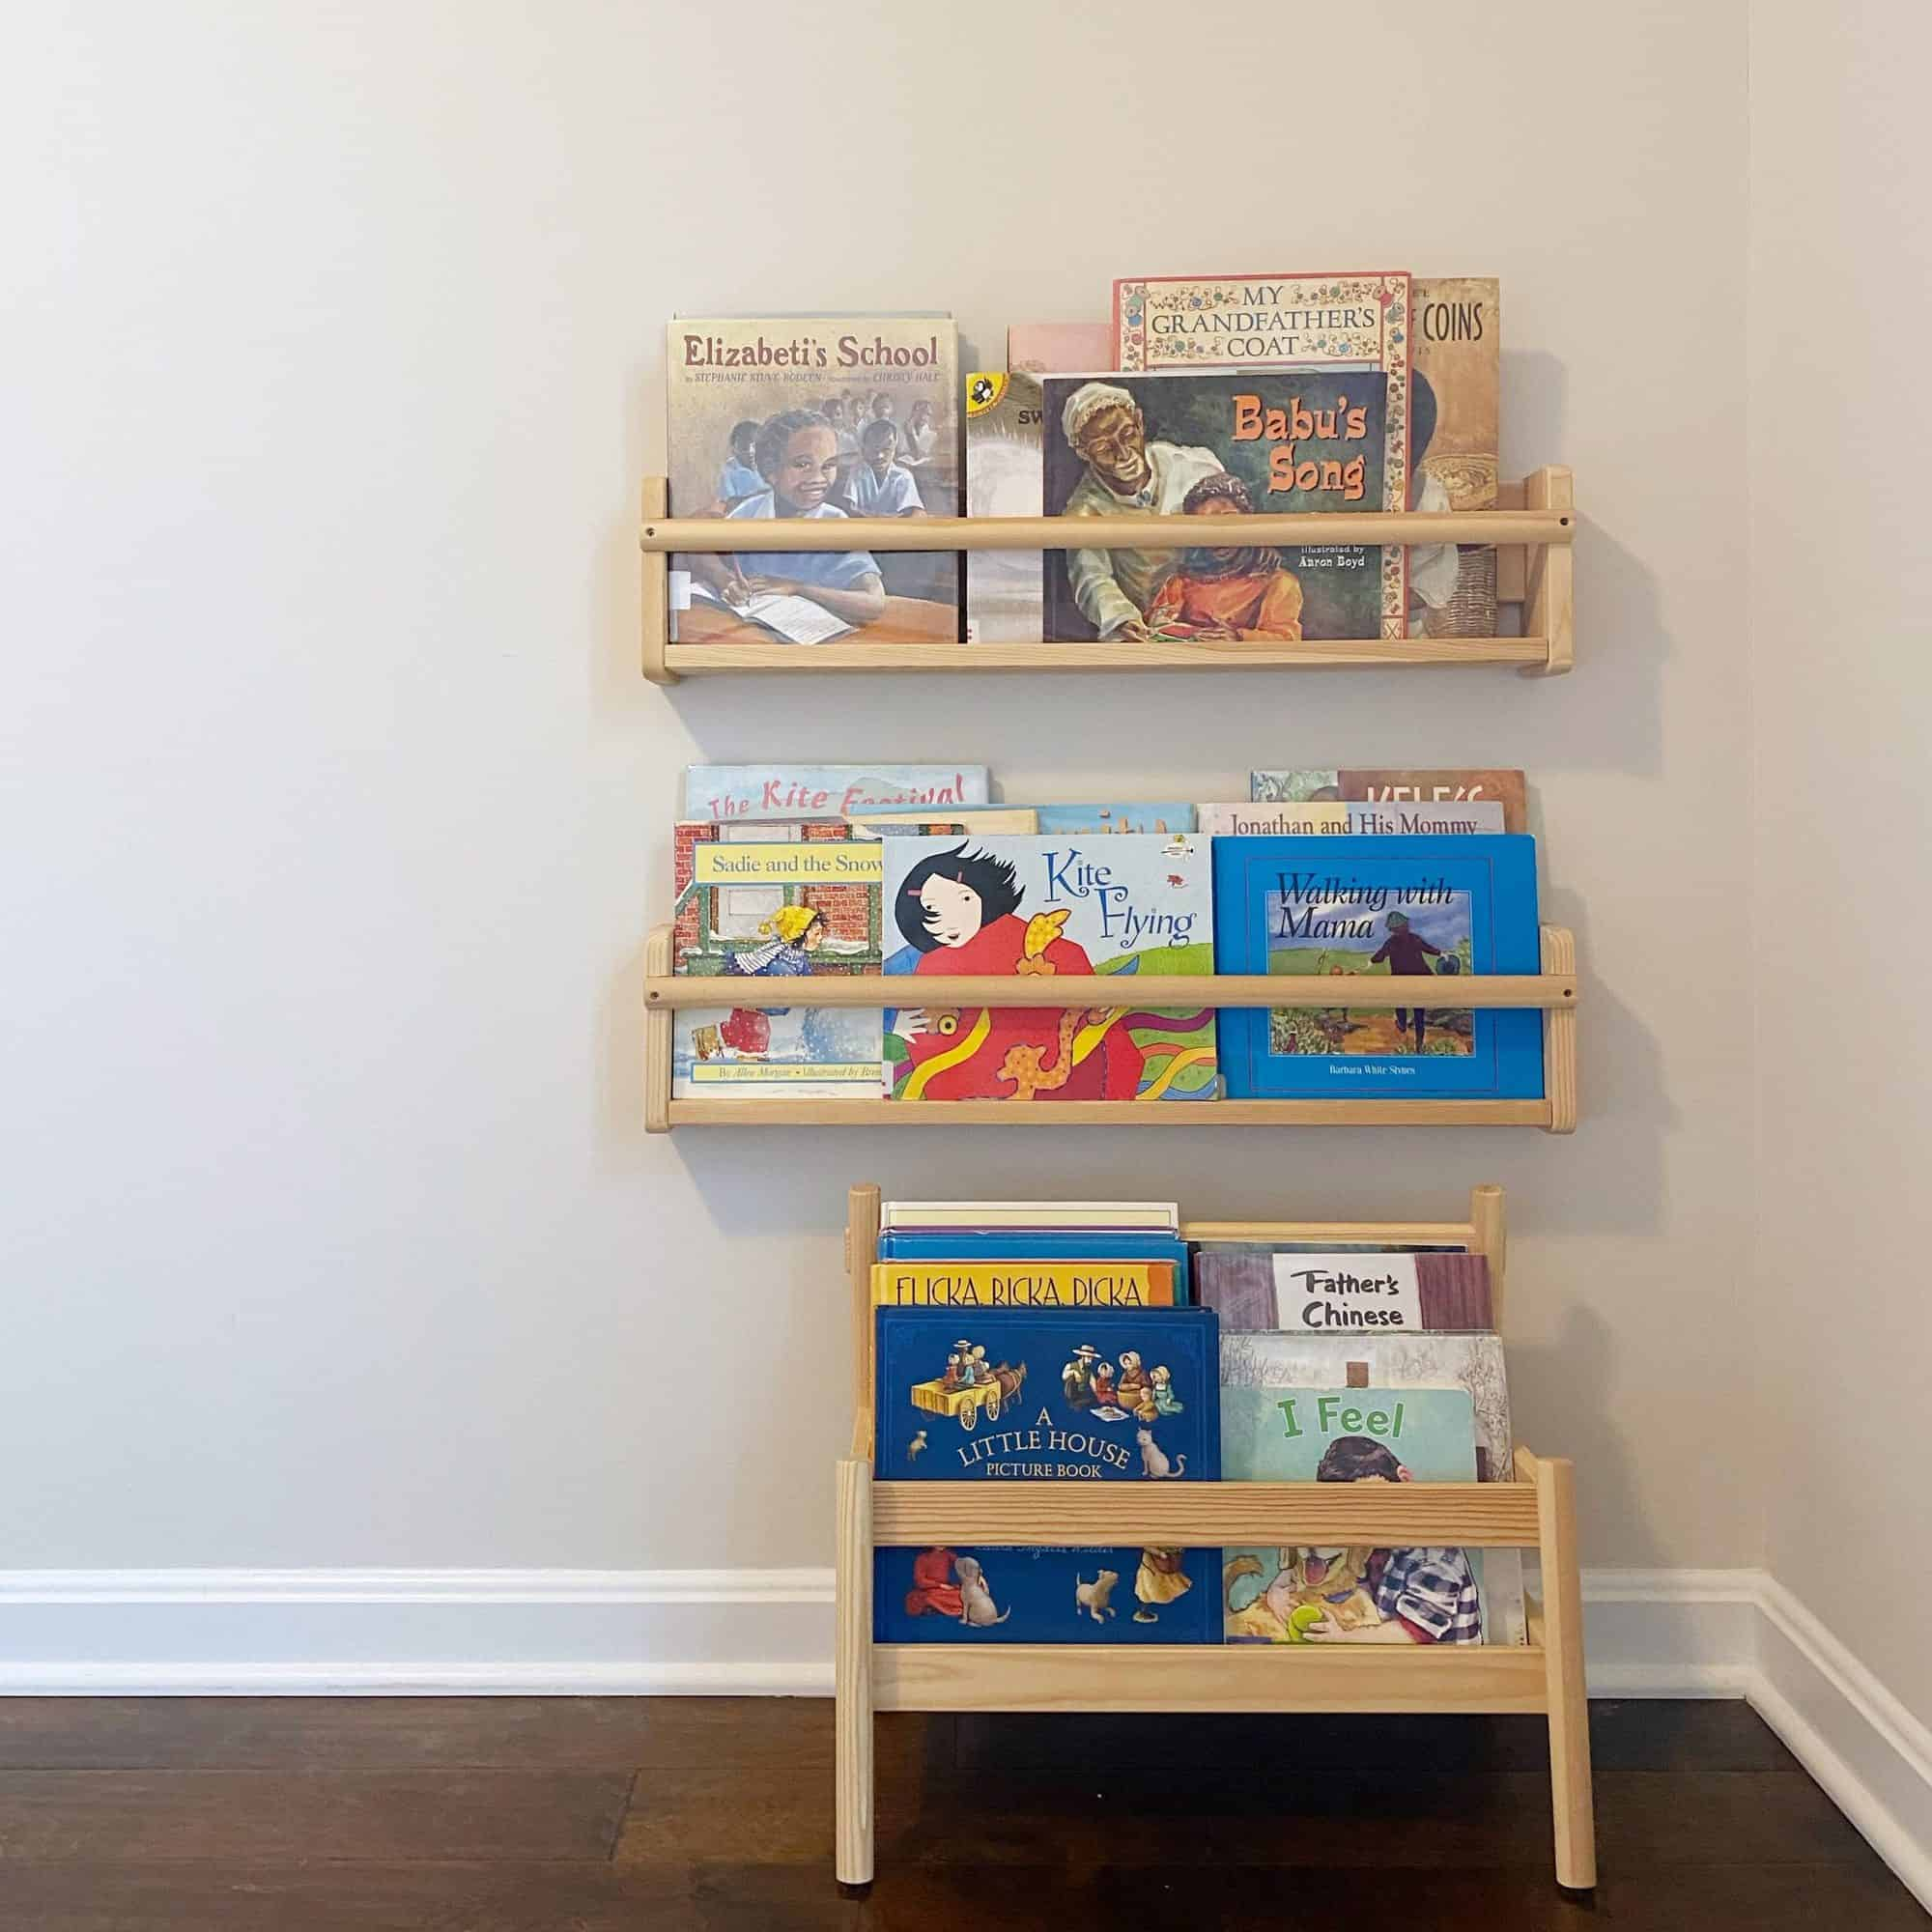 A Montessori-friendly reading nook for kids makes books easily accessible. Here, two IKEA FLISAT wall-racks and an IKEA FLISAT book bin were used in a corner of a bedroom. #montessoriathome #booknook #readingnook